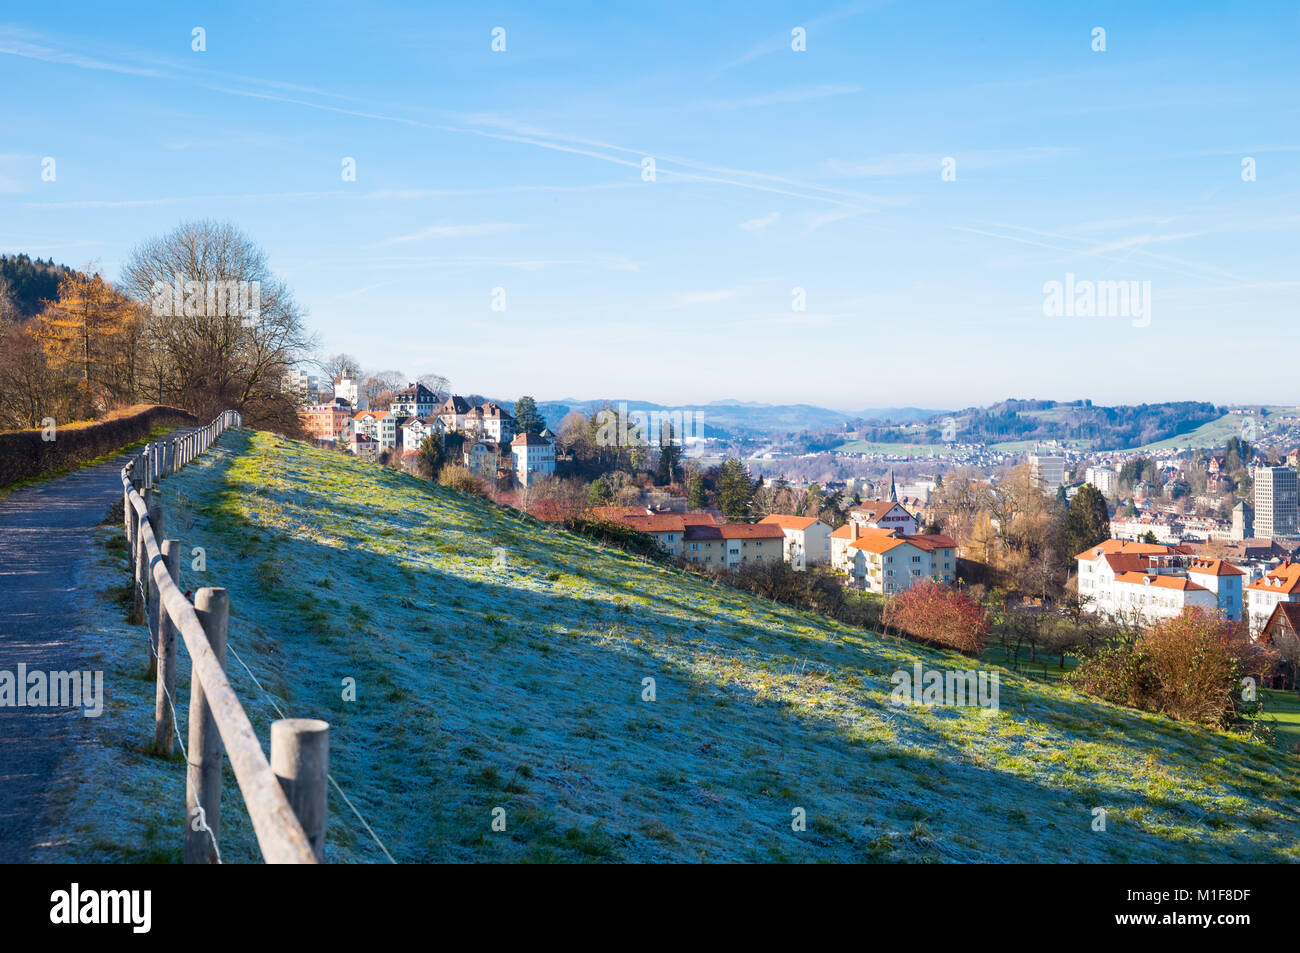 St.Gallen, Switzerland, View of the city from the Dreilinden recreational area - Stock Image